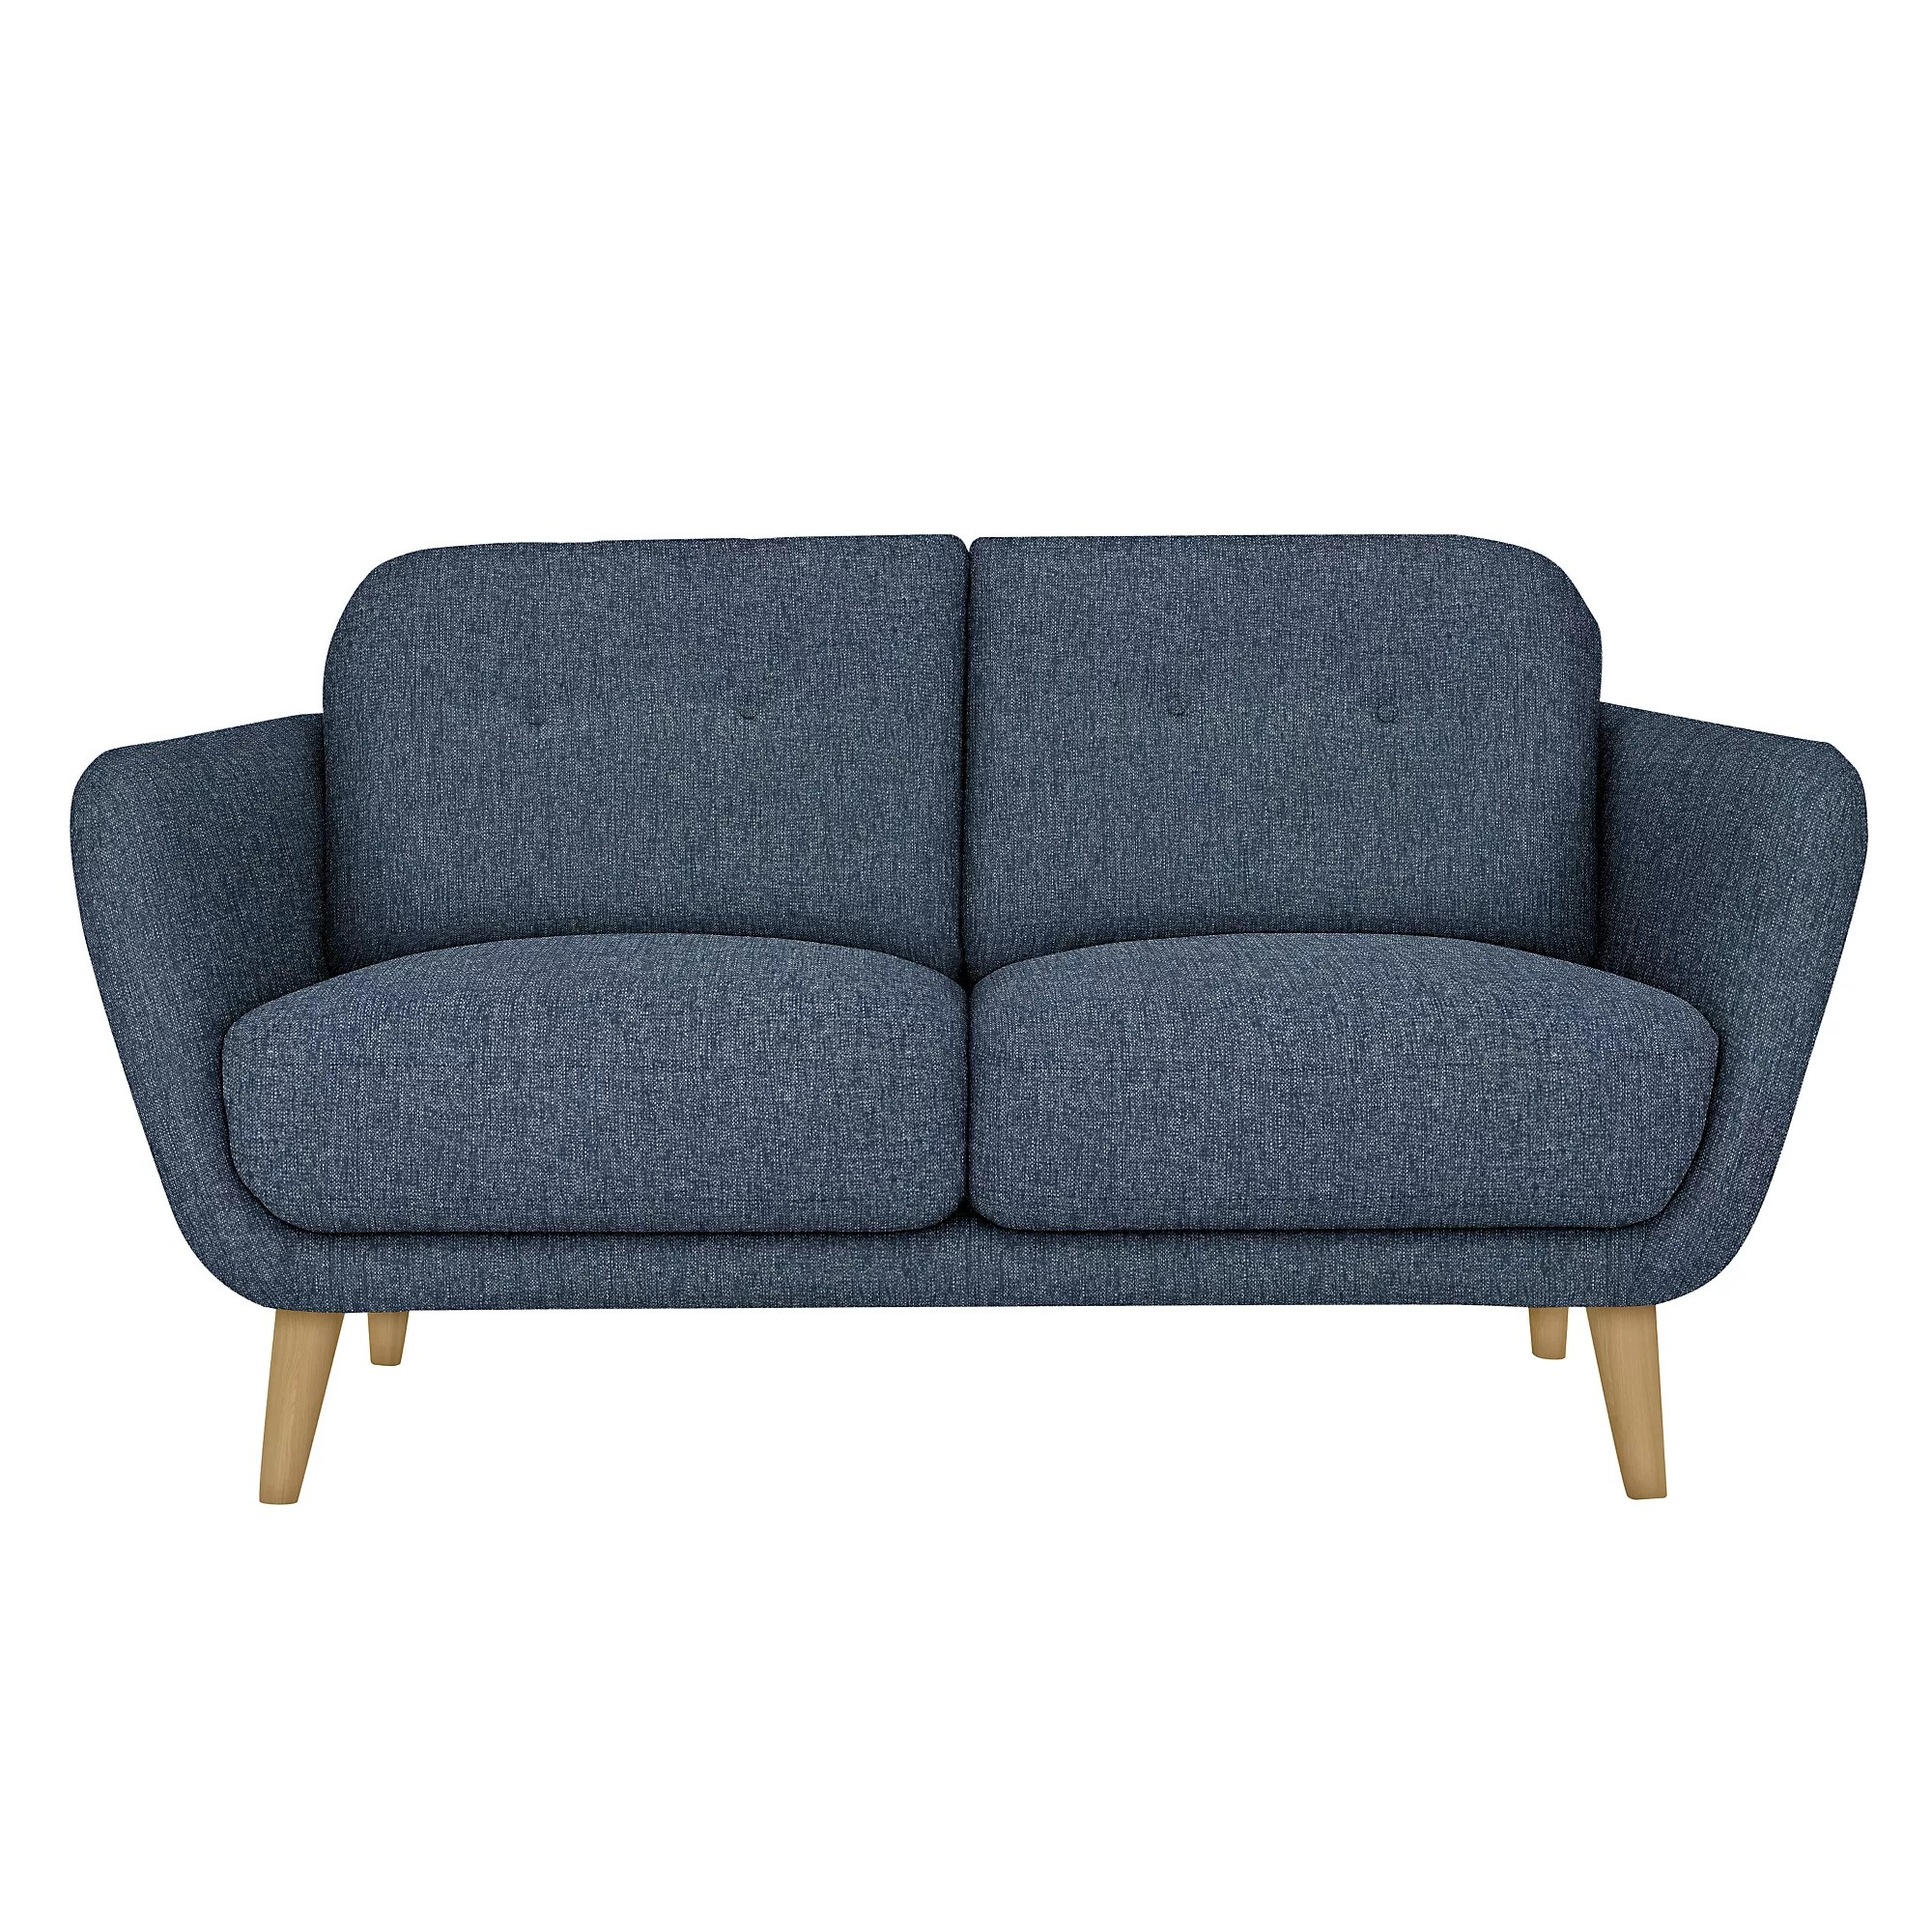 sofaworks westfield stratford mercado libre mexico sofa cama usados furniture clearance home offers john lewis partners 20 off sofas armchairs